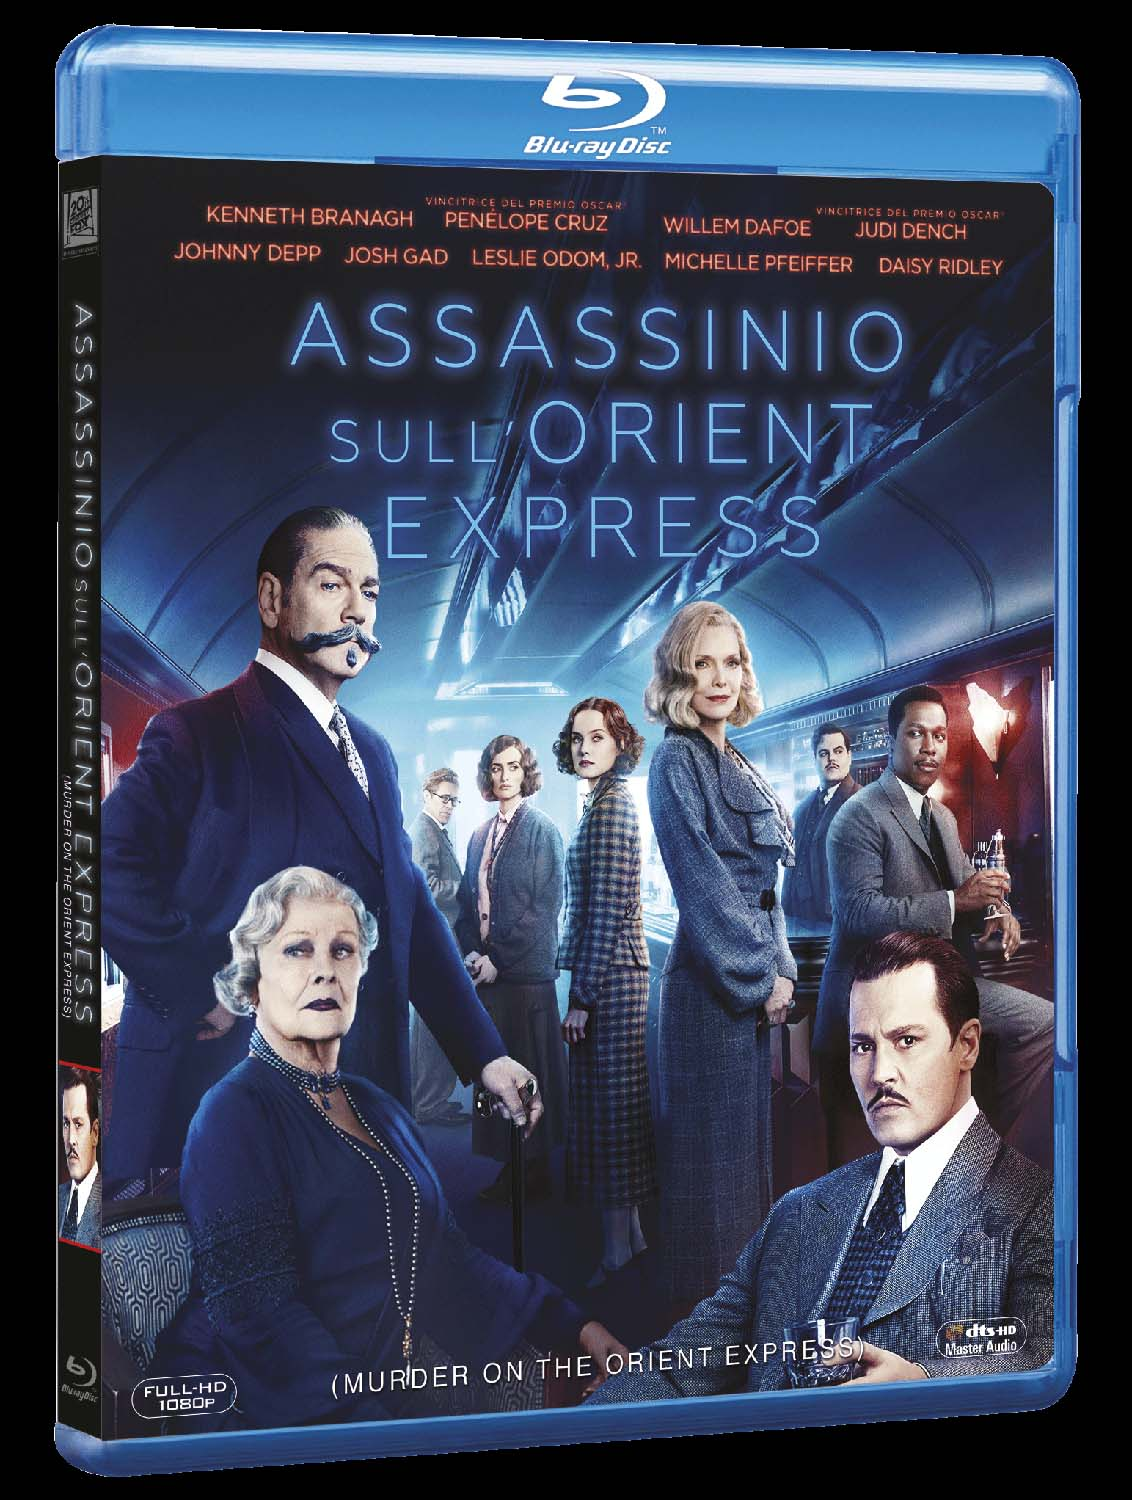 ASSASSINIO SULL'ORIENT EXPRESS - BLU RAY